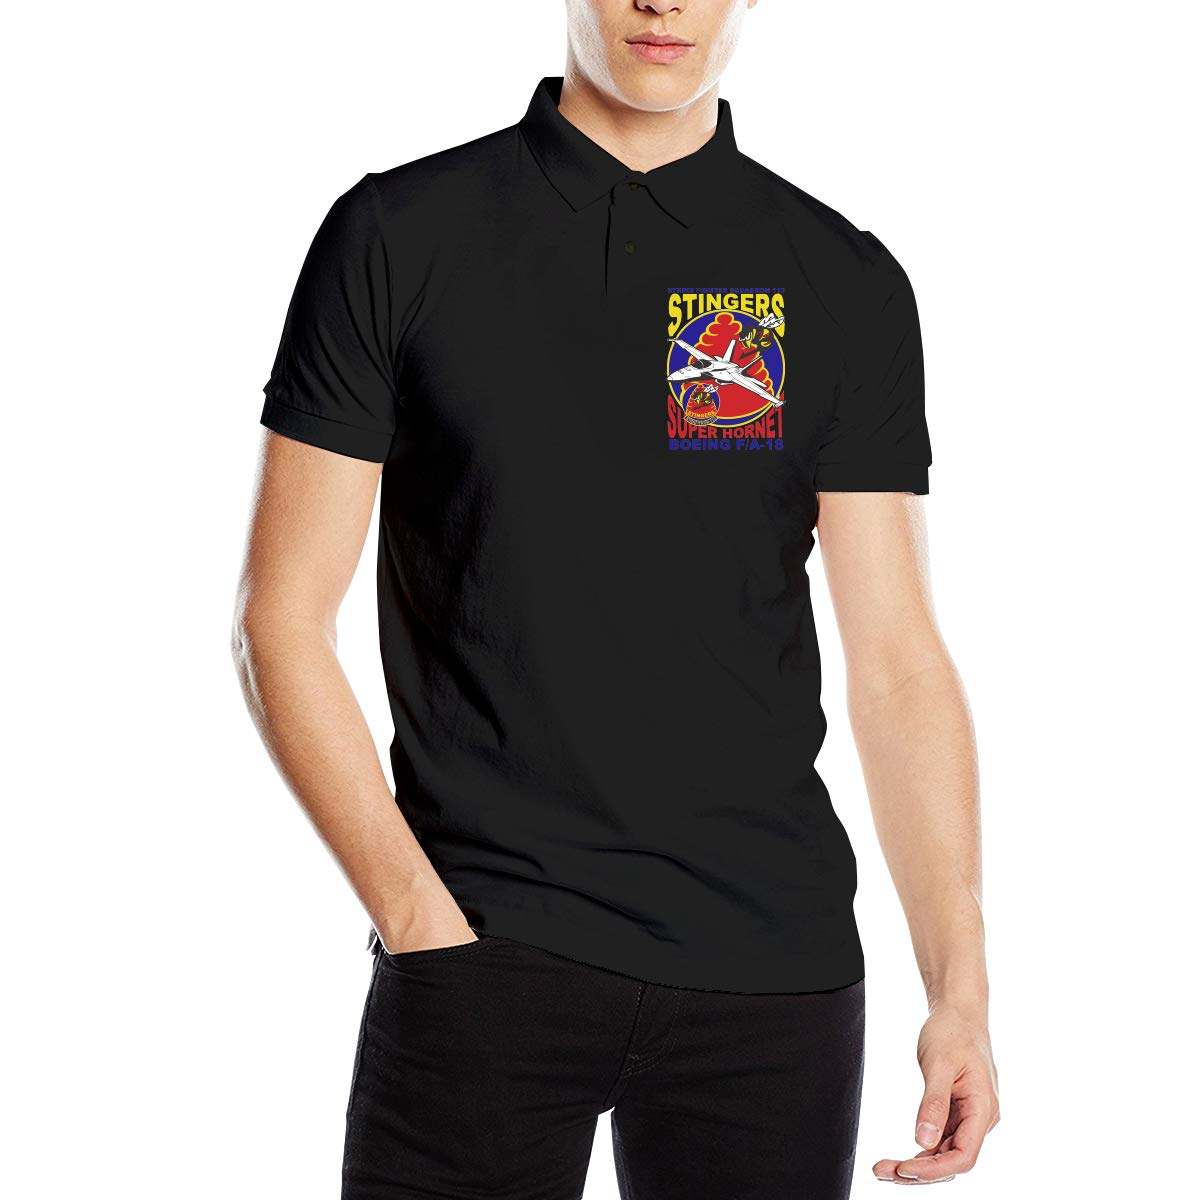 You Know And Good VFA-113 Stingers Mens Regular-Fit Cotton Polo Shirt Short Sleeve